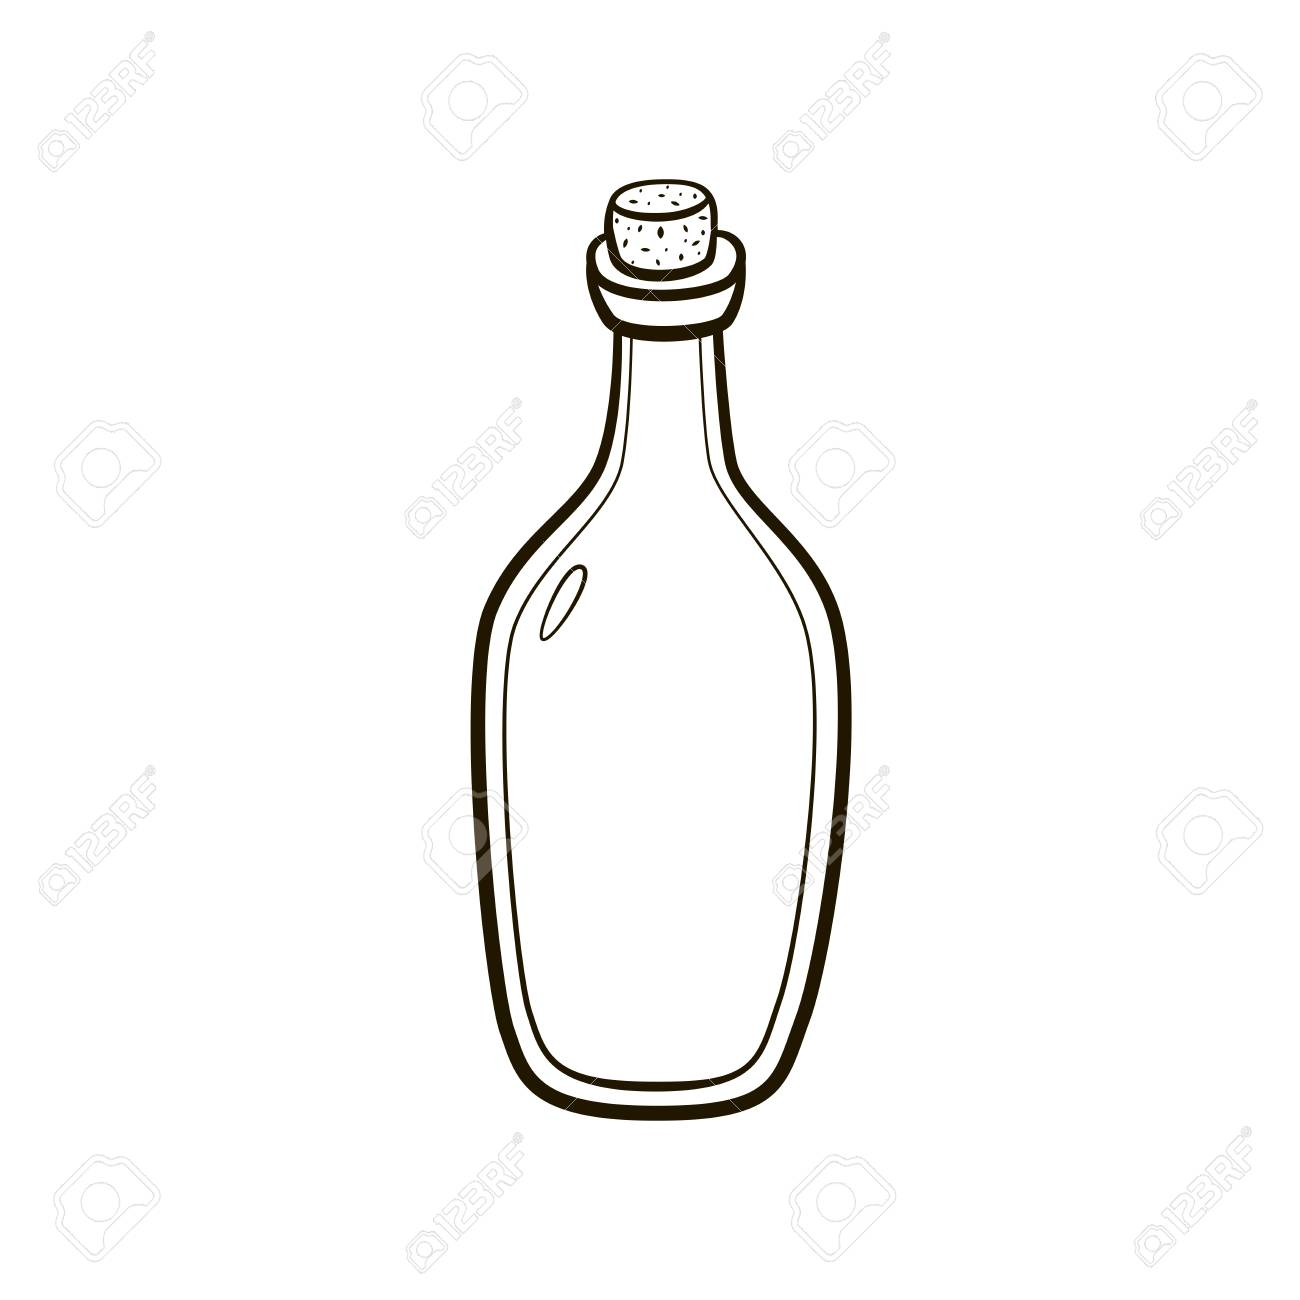 Old Fashioned Vintage Bottle Hand Drawing On White Background Stock Vector